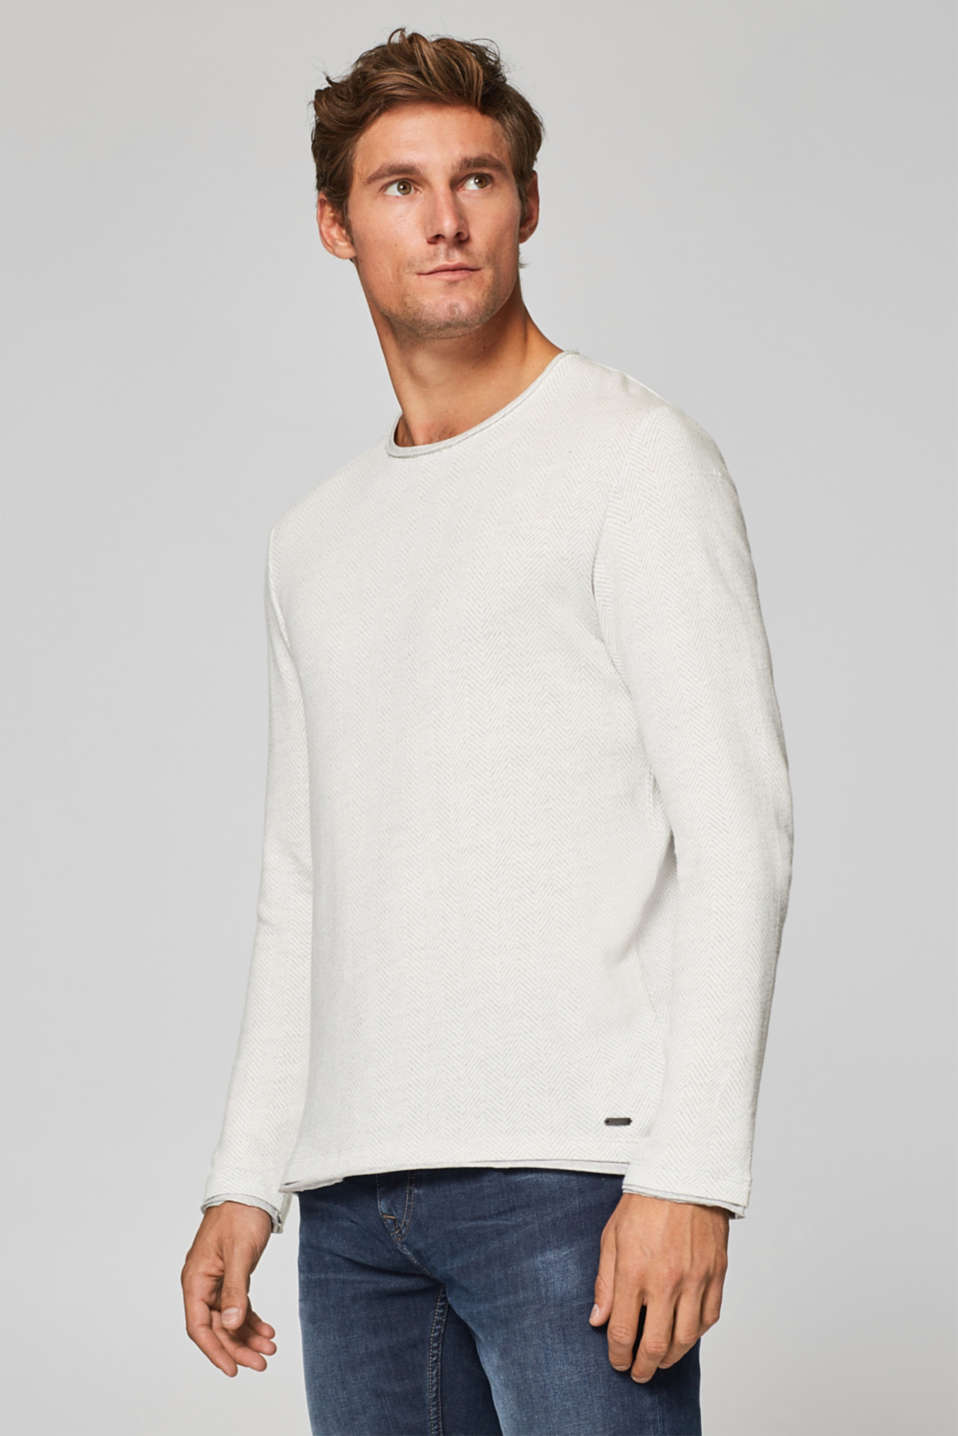 Esprit - Jersey long sleeve top with a herringbone pattern